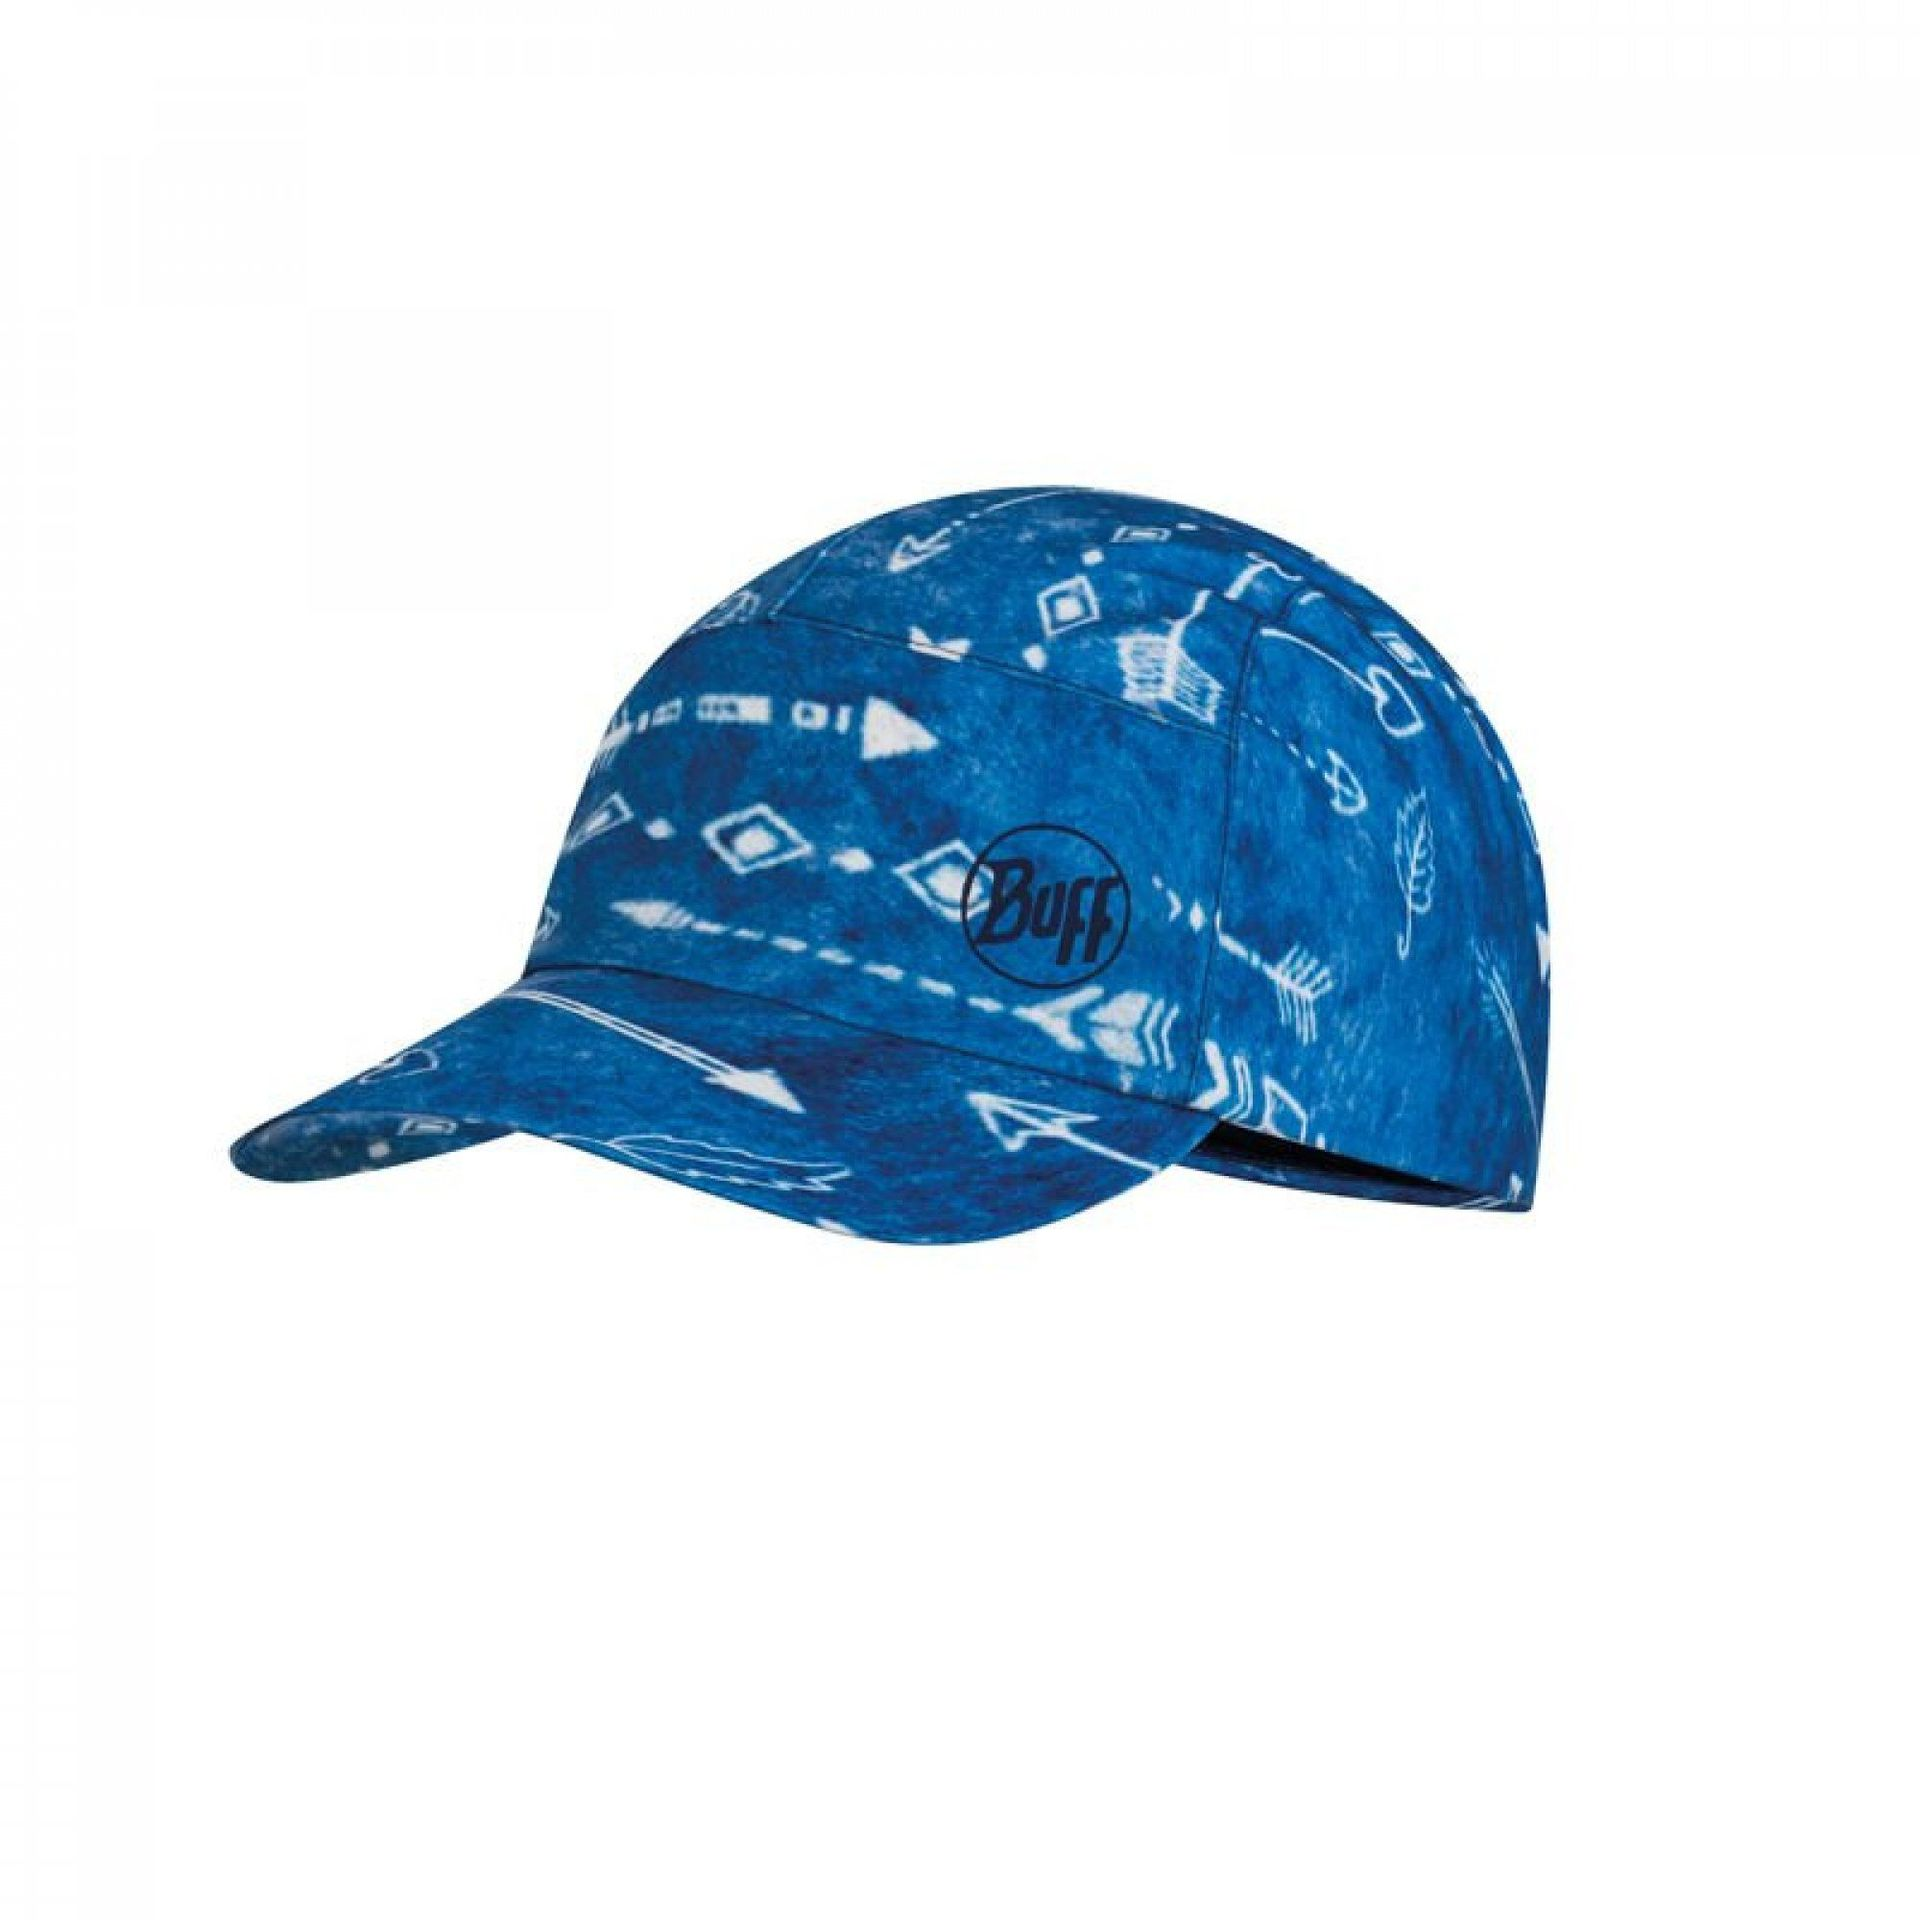 CZAPKA BUFF PACK KIDS CAP ARCHERY BLUE